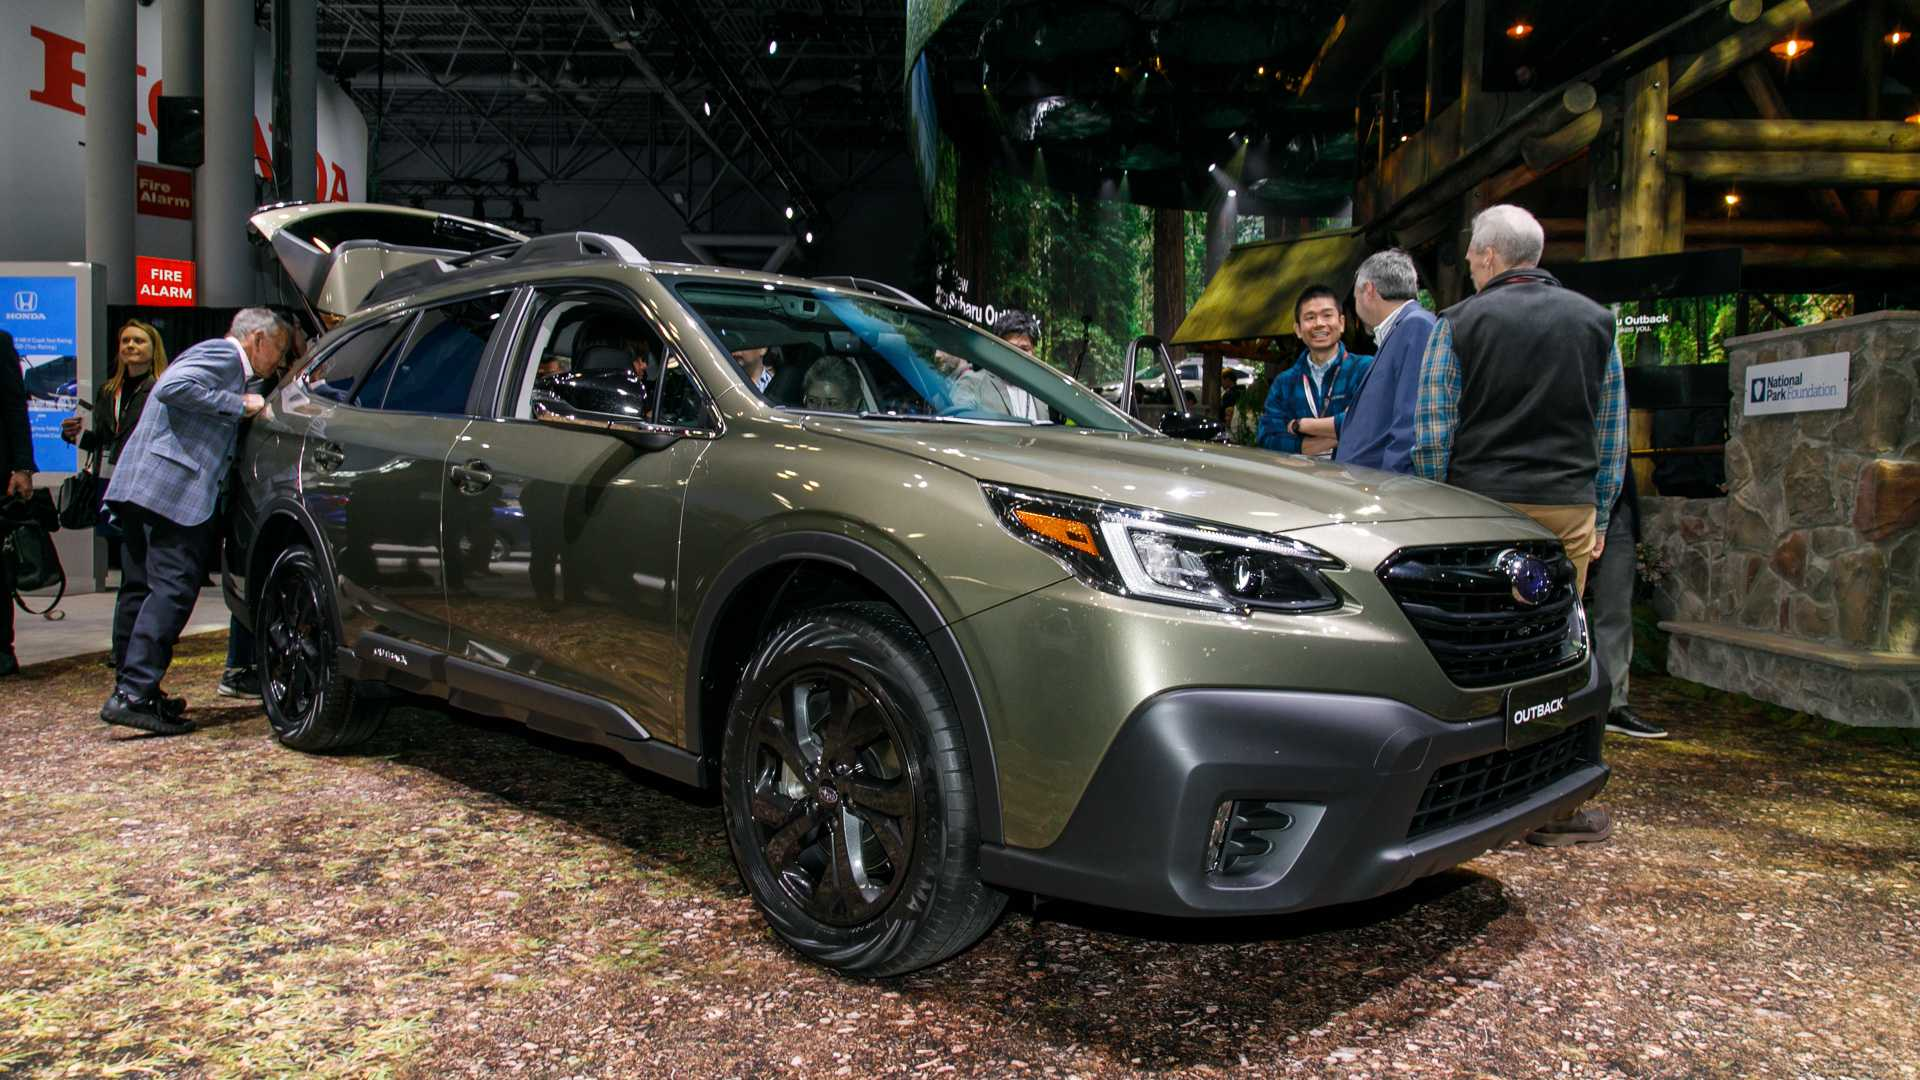 77 Great New Generation 2020 Subaru Outback Exterior and Interior for New Generation 2020 Subaru Outback